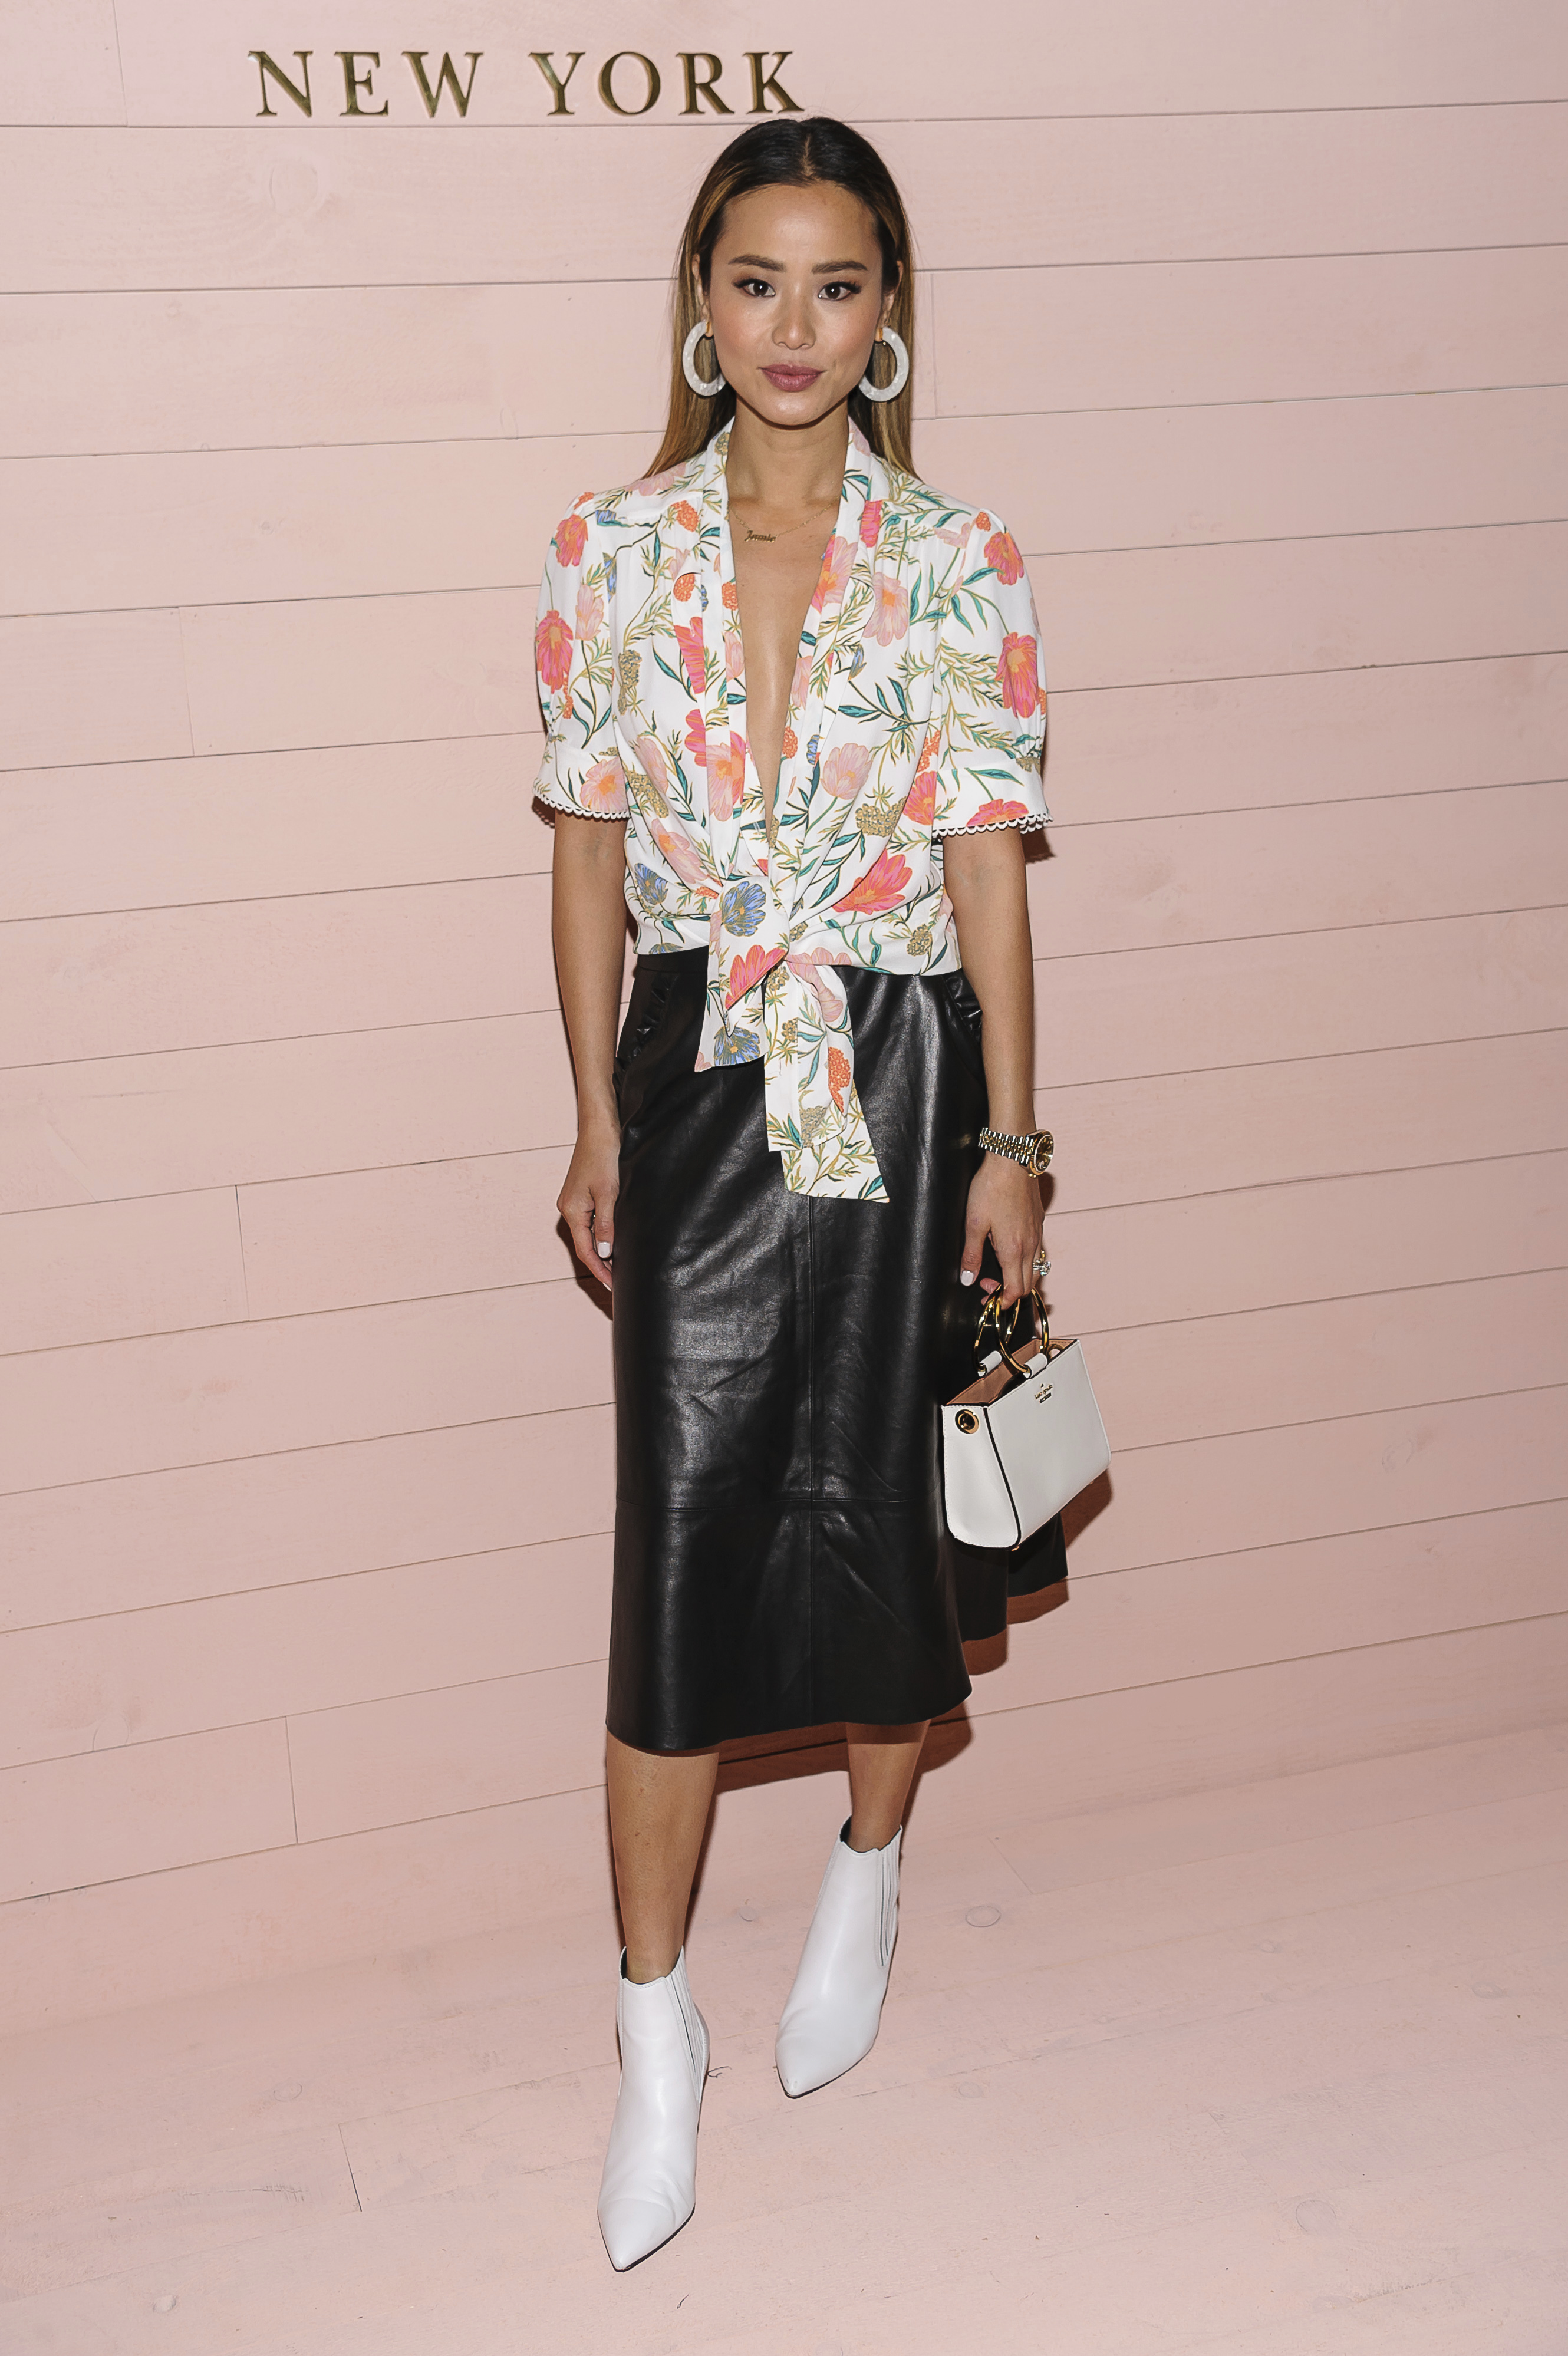 <div class='meta'><div class='origin-logo' data-origin='AP'></div><span class='caption-text' data-credit='Christopher Smith/Invision/AP'>Jamie Chung attends Kate Spade at Masonic Hall on Friday, February 8, 2018, in New York, NY. (Photo by Christopher Smith/Invision/AP)</span></div>